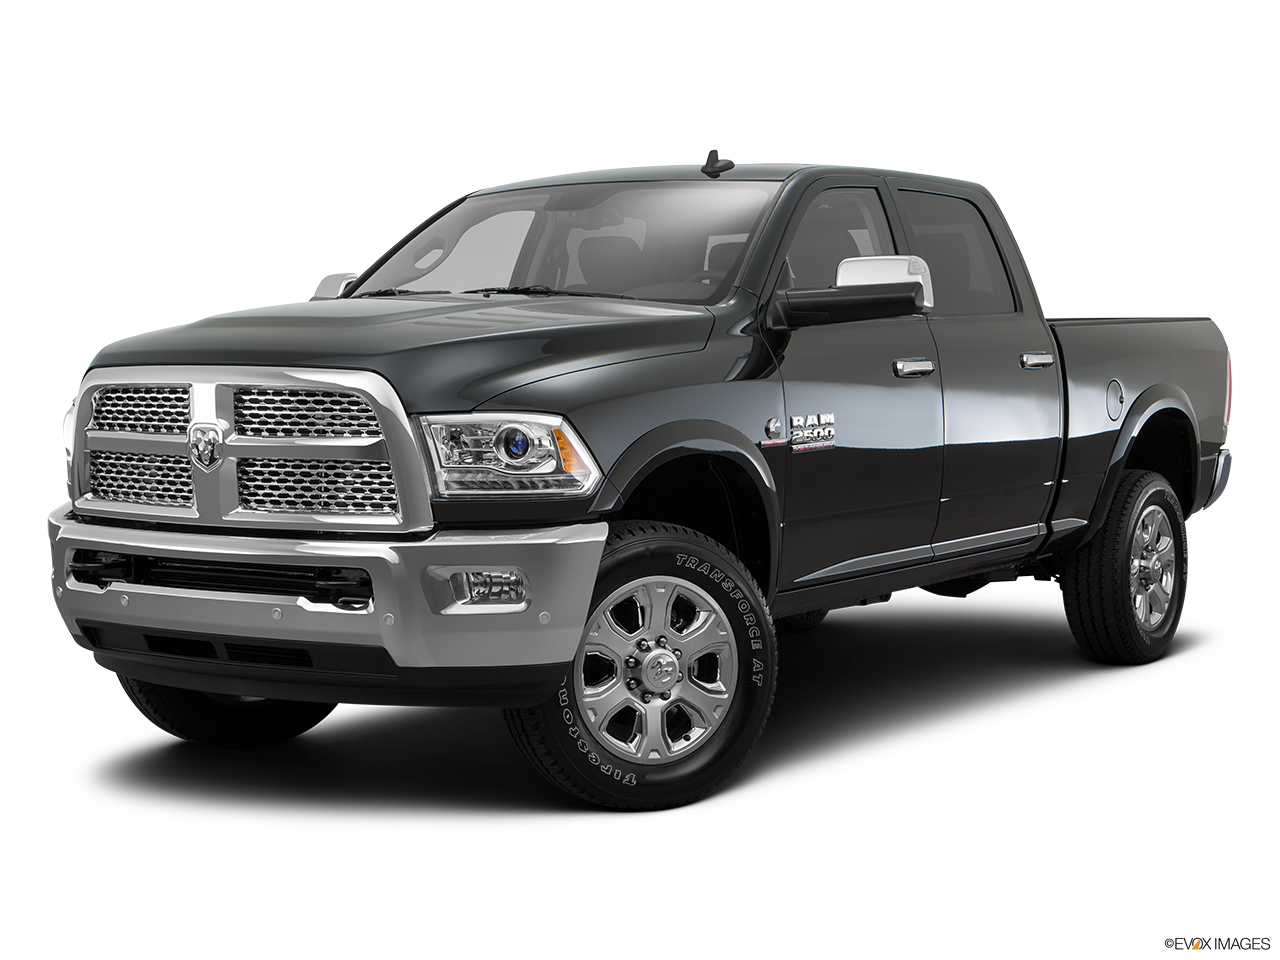 Test Drive A 2016 RAM 2500 at Nashville Chrysler Dodge Jeep RAM in Antioch